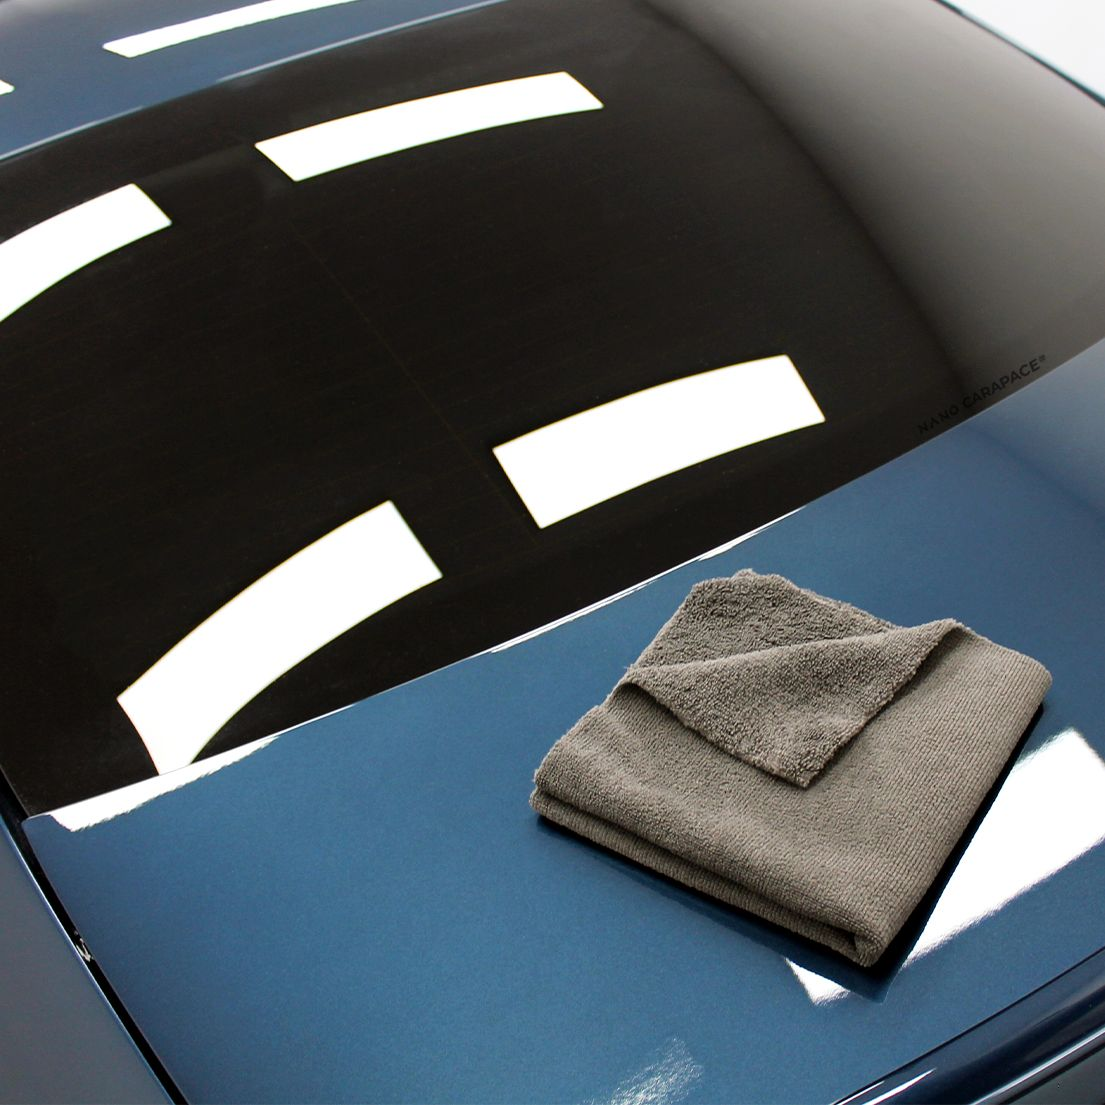 Nano Quick detailer - Cleans and Protects